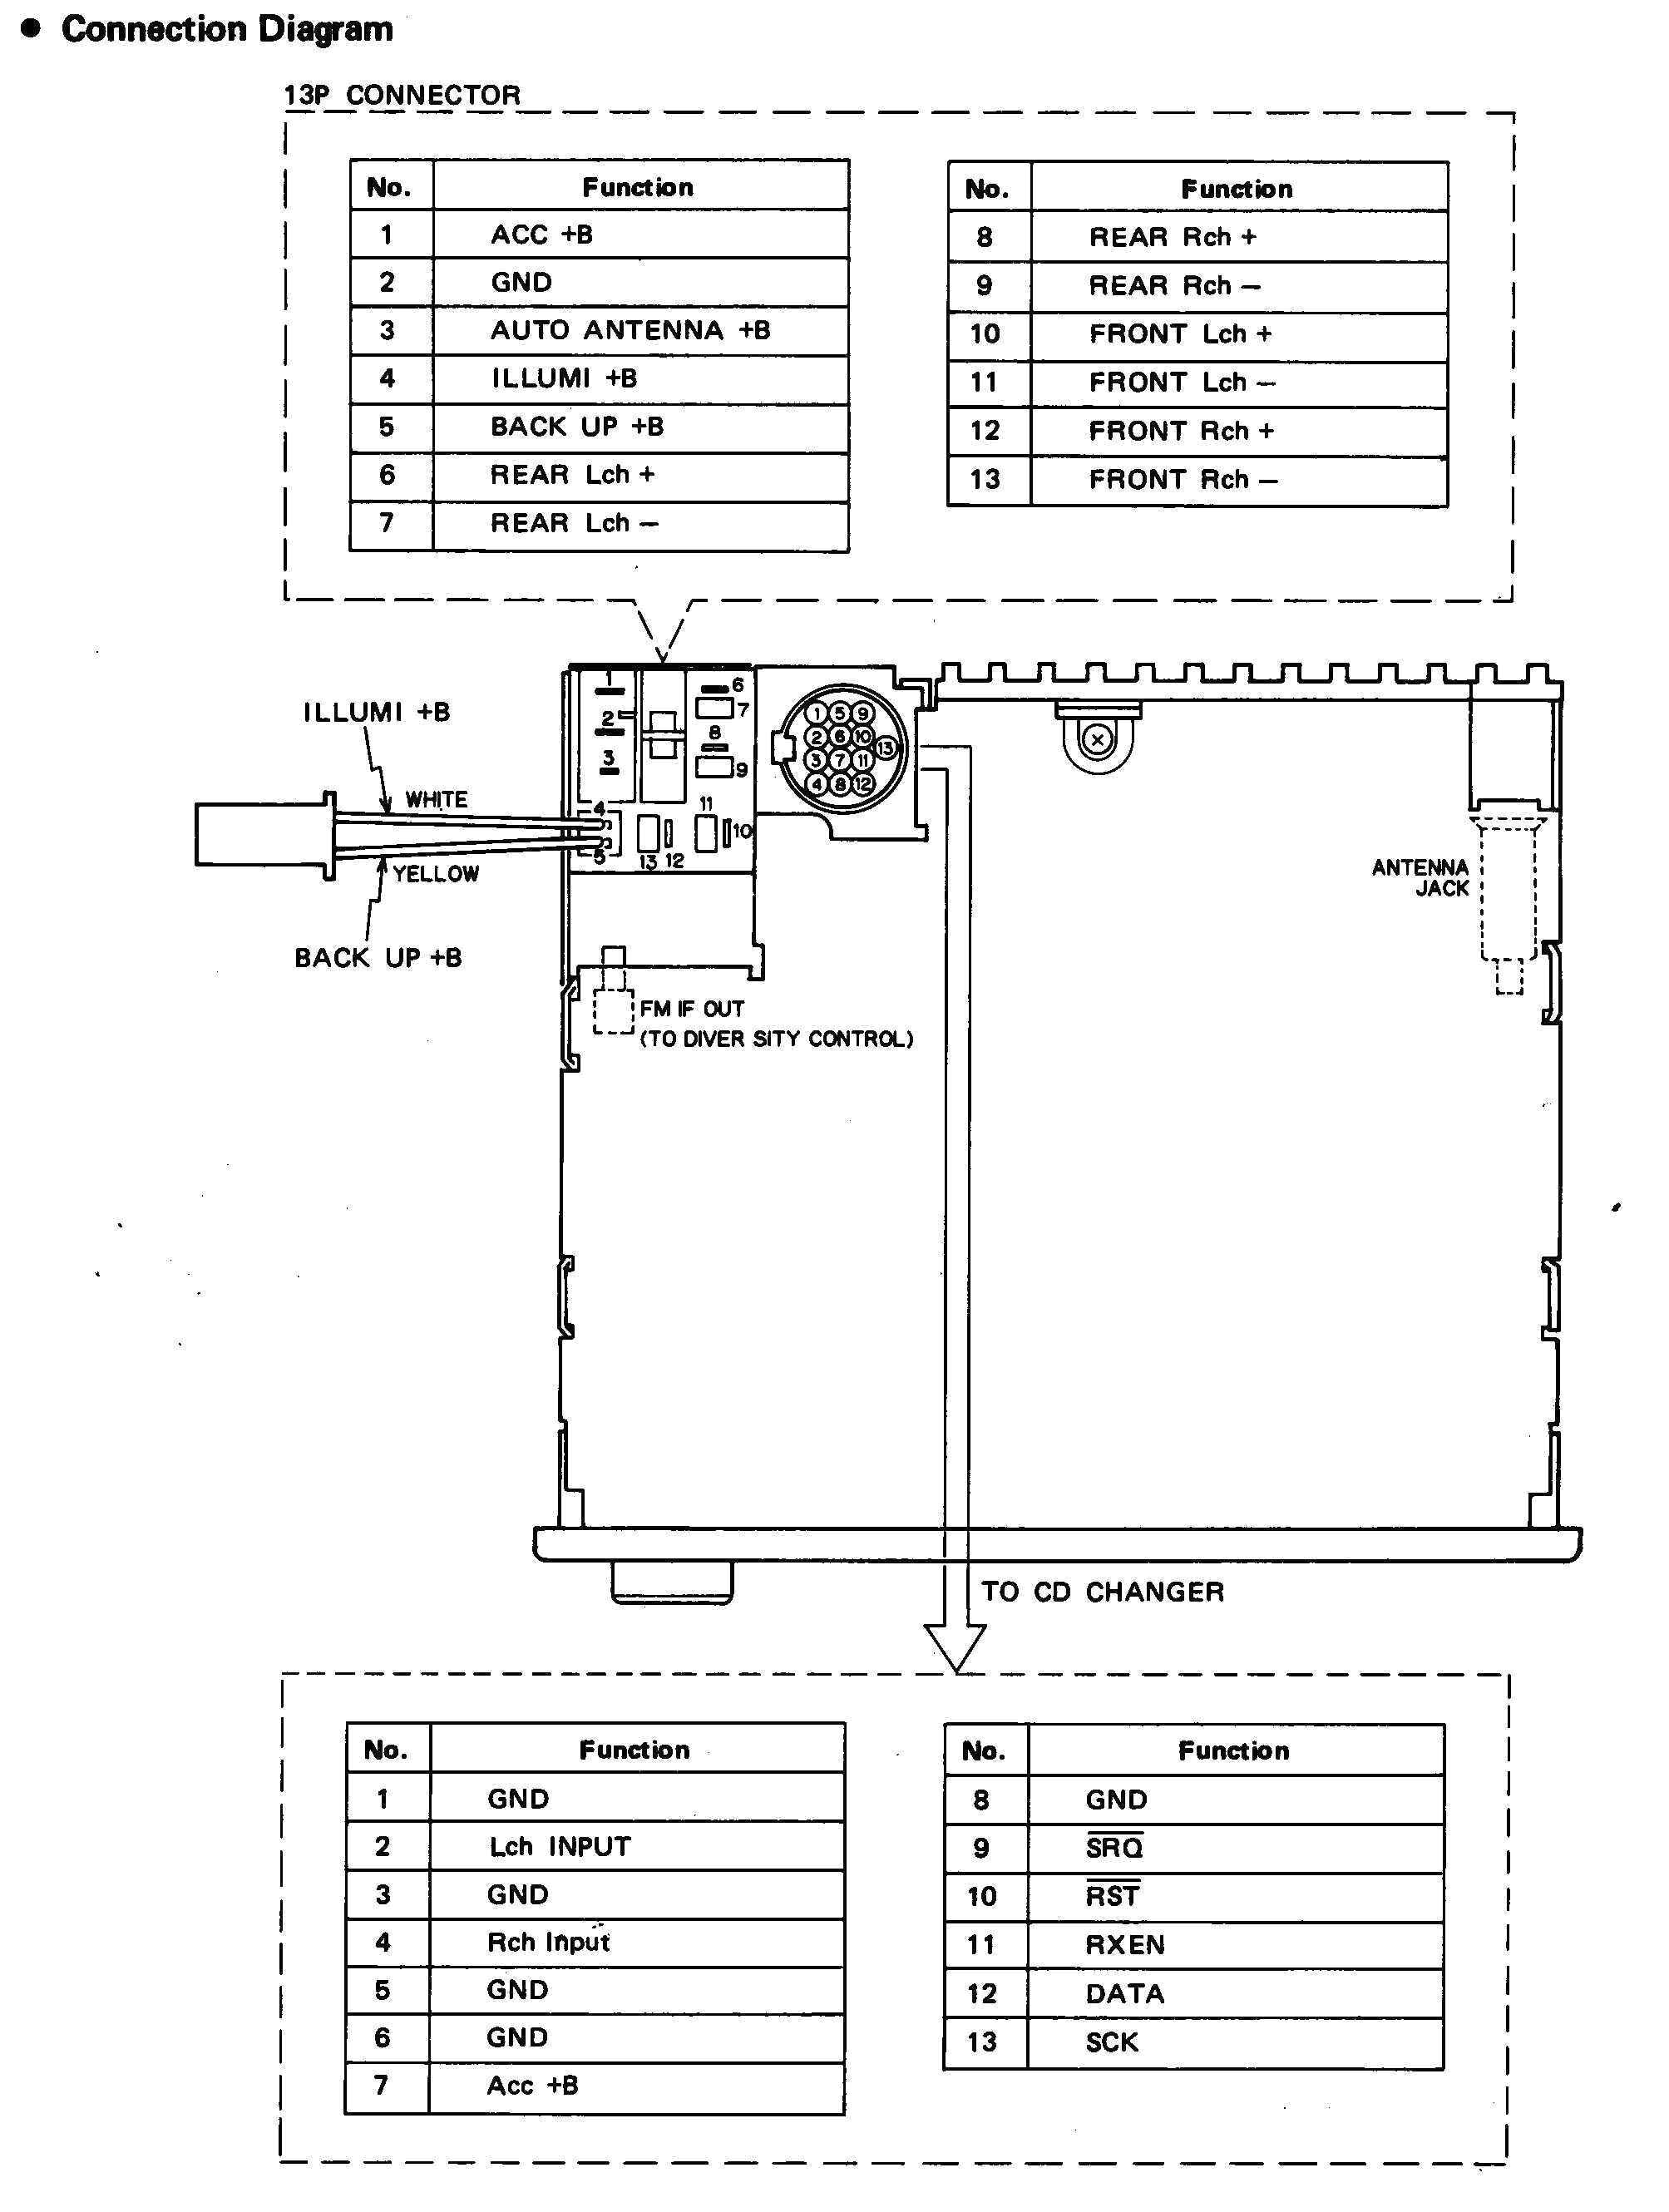 wiring diagram troubleshooting amp support for pioneer deh 1500 pioneer deh 1500 wiring harness wiring diagram